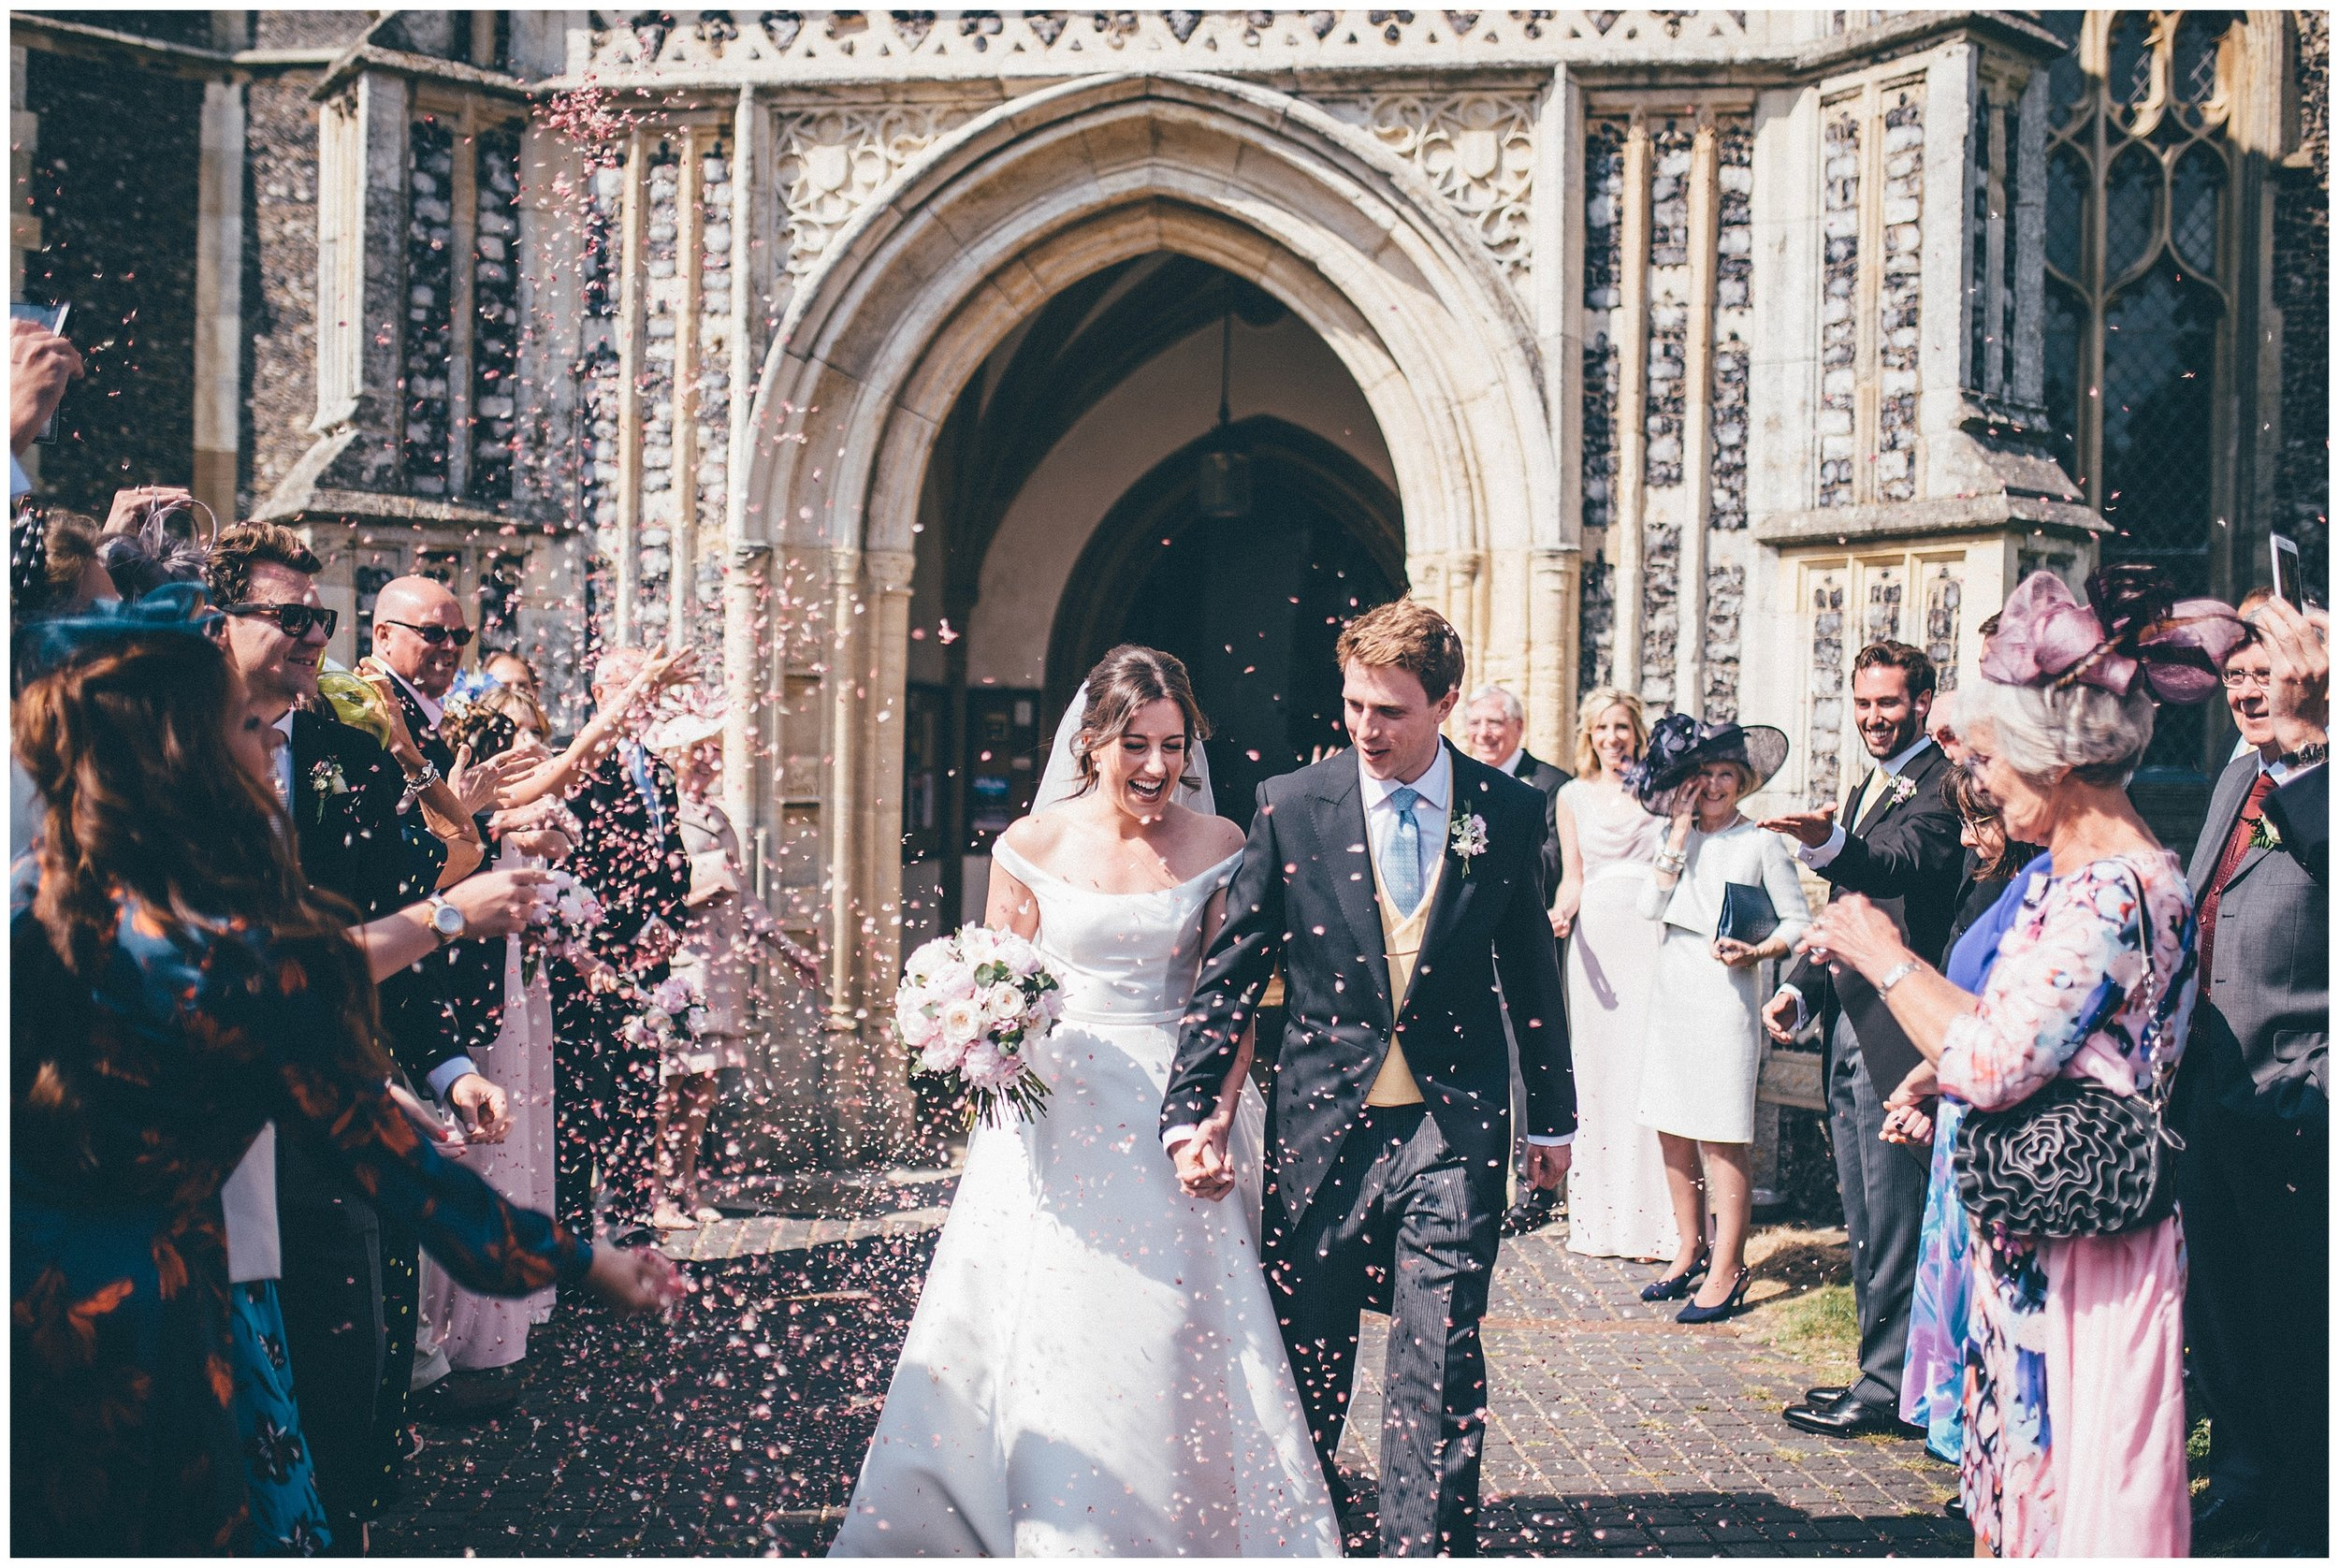 Confetti at a Wedding at St Edmunds Church in Southwold.